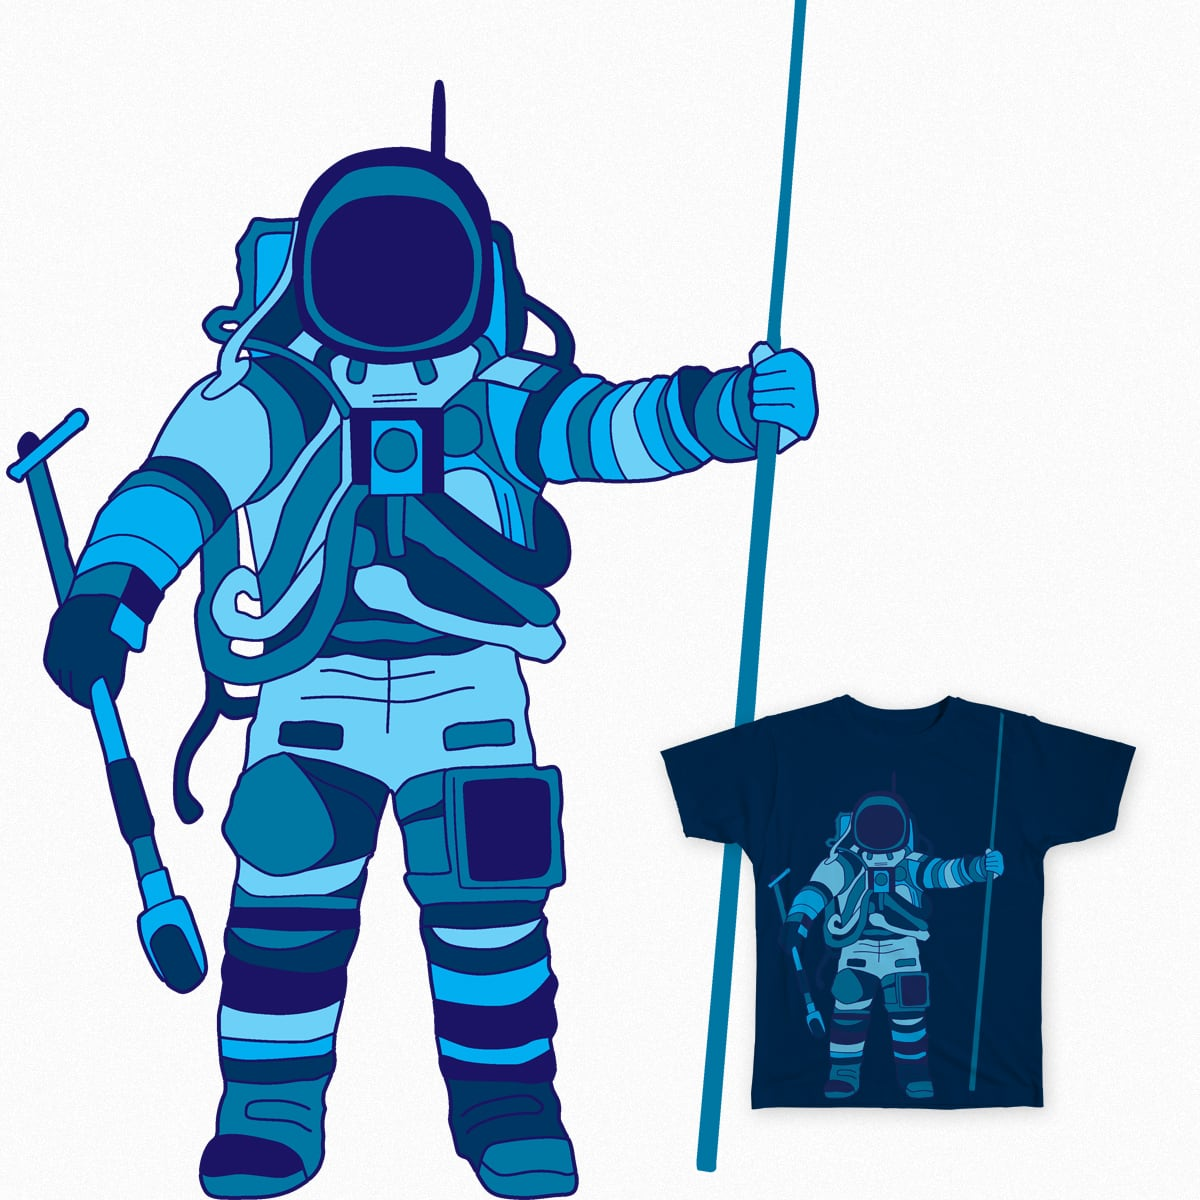 Astronaut by bulo on Threadless